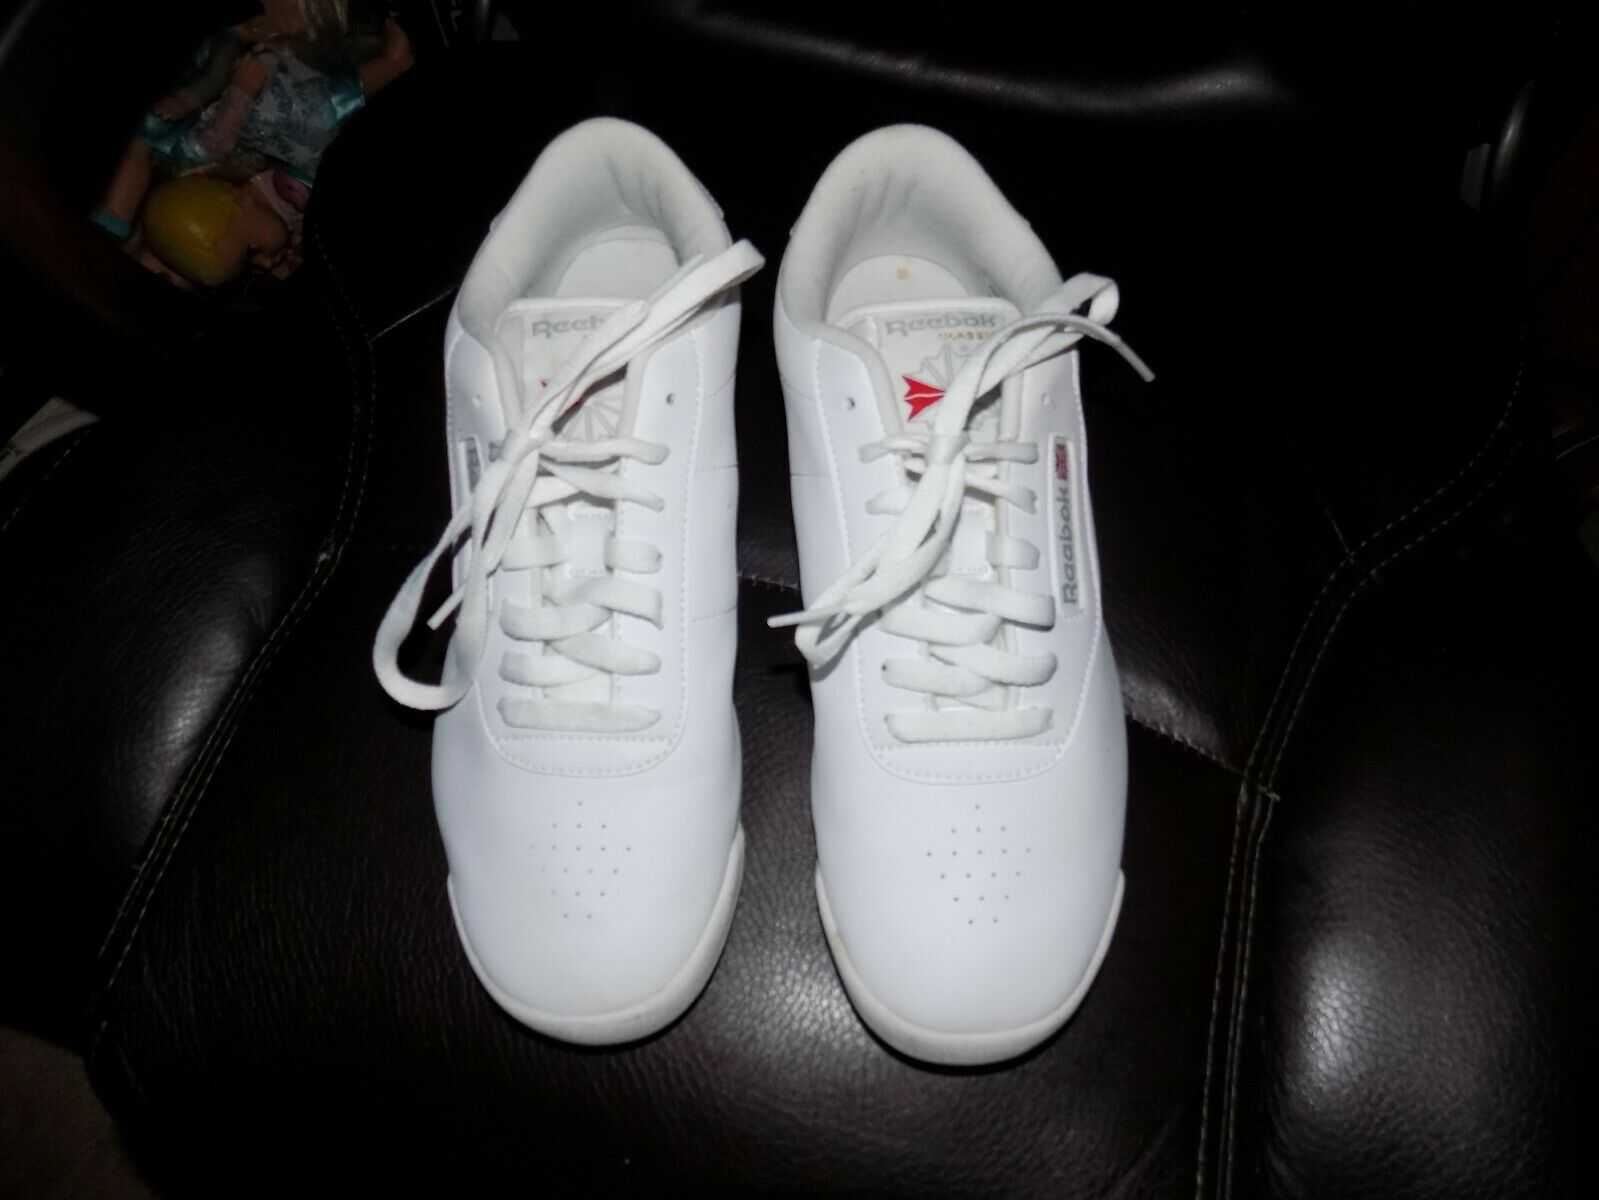 Reebok Classic 039501 White Leather Walking Running shoes Size 9.5 Wide Women's